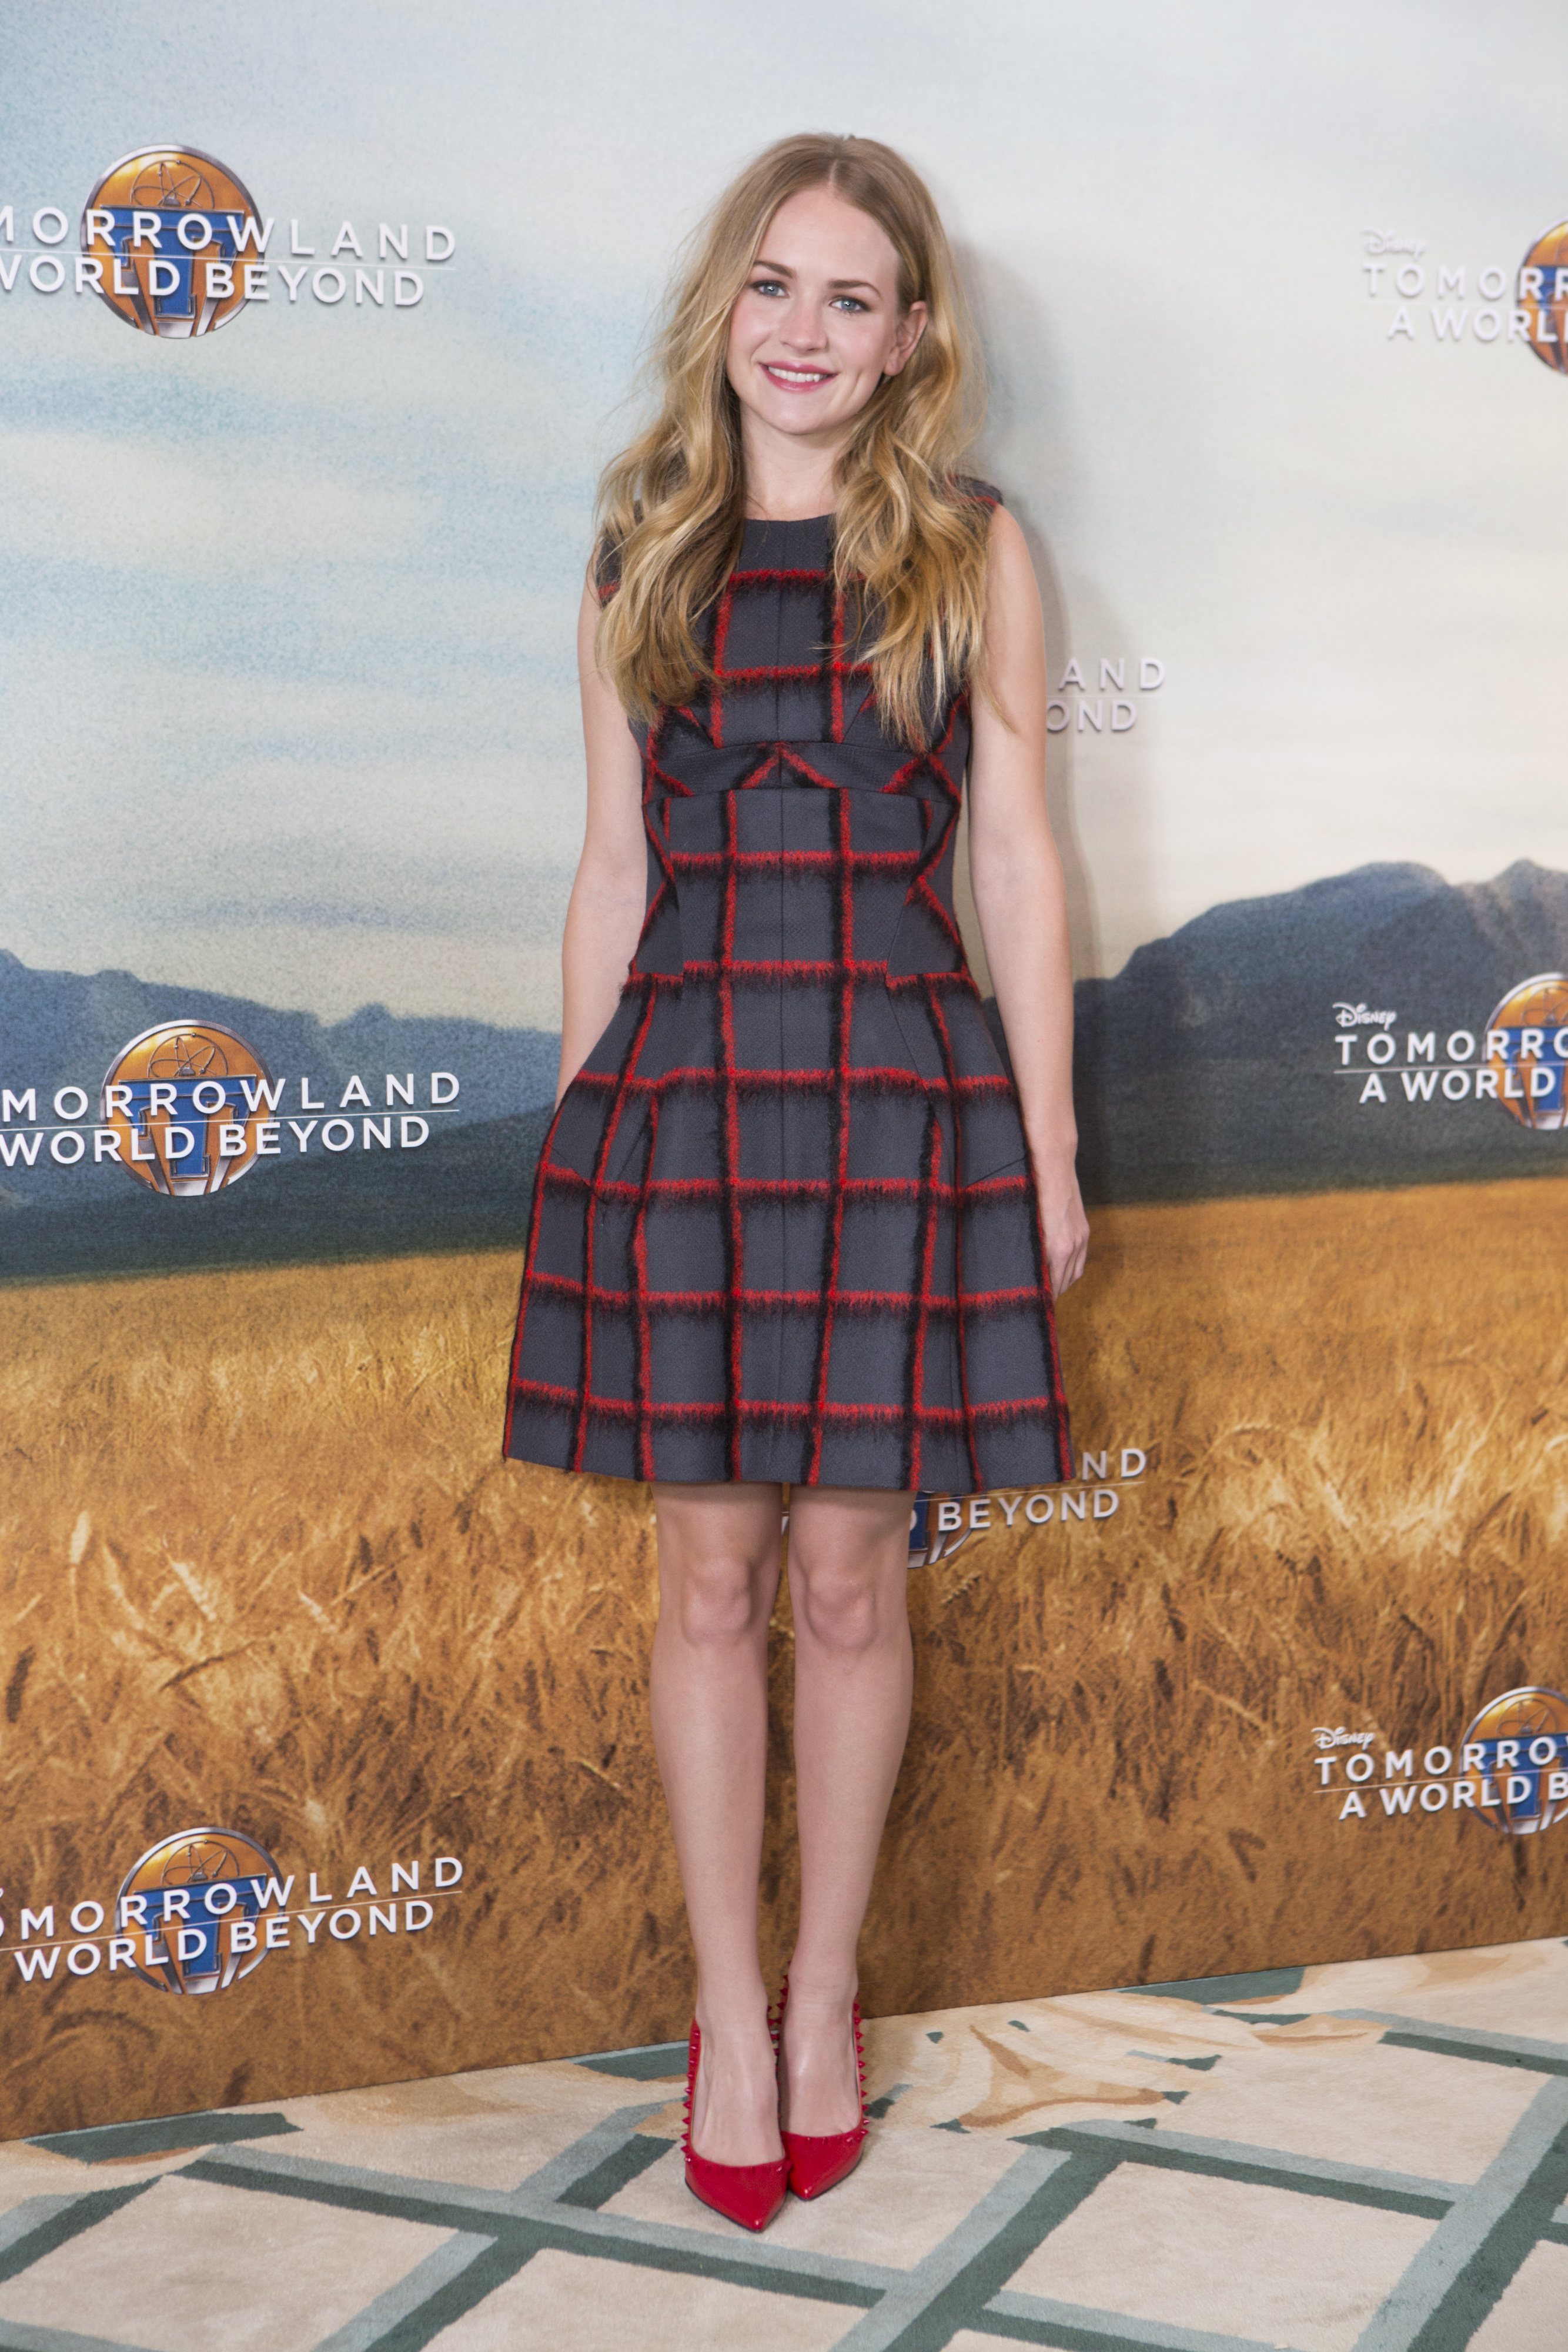 Actress Britt Robertson attends the European photo call of Disney?s ?Tomorrowland: A World Beyond? on May 18 in London, UK (Credit: James Gillham/ StingMedia.co.uk